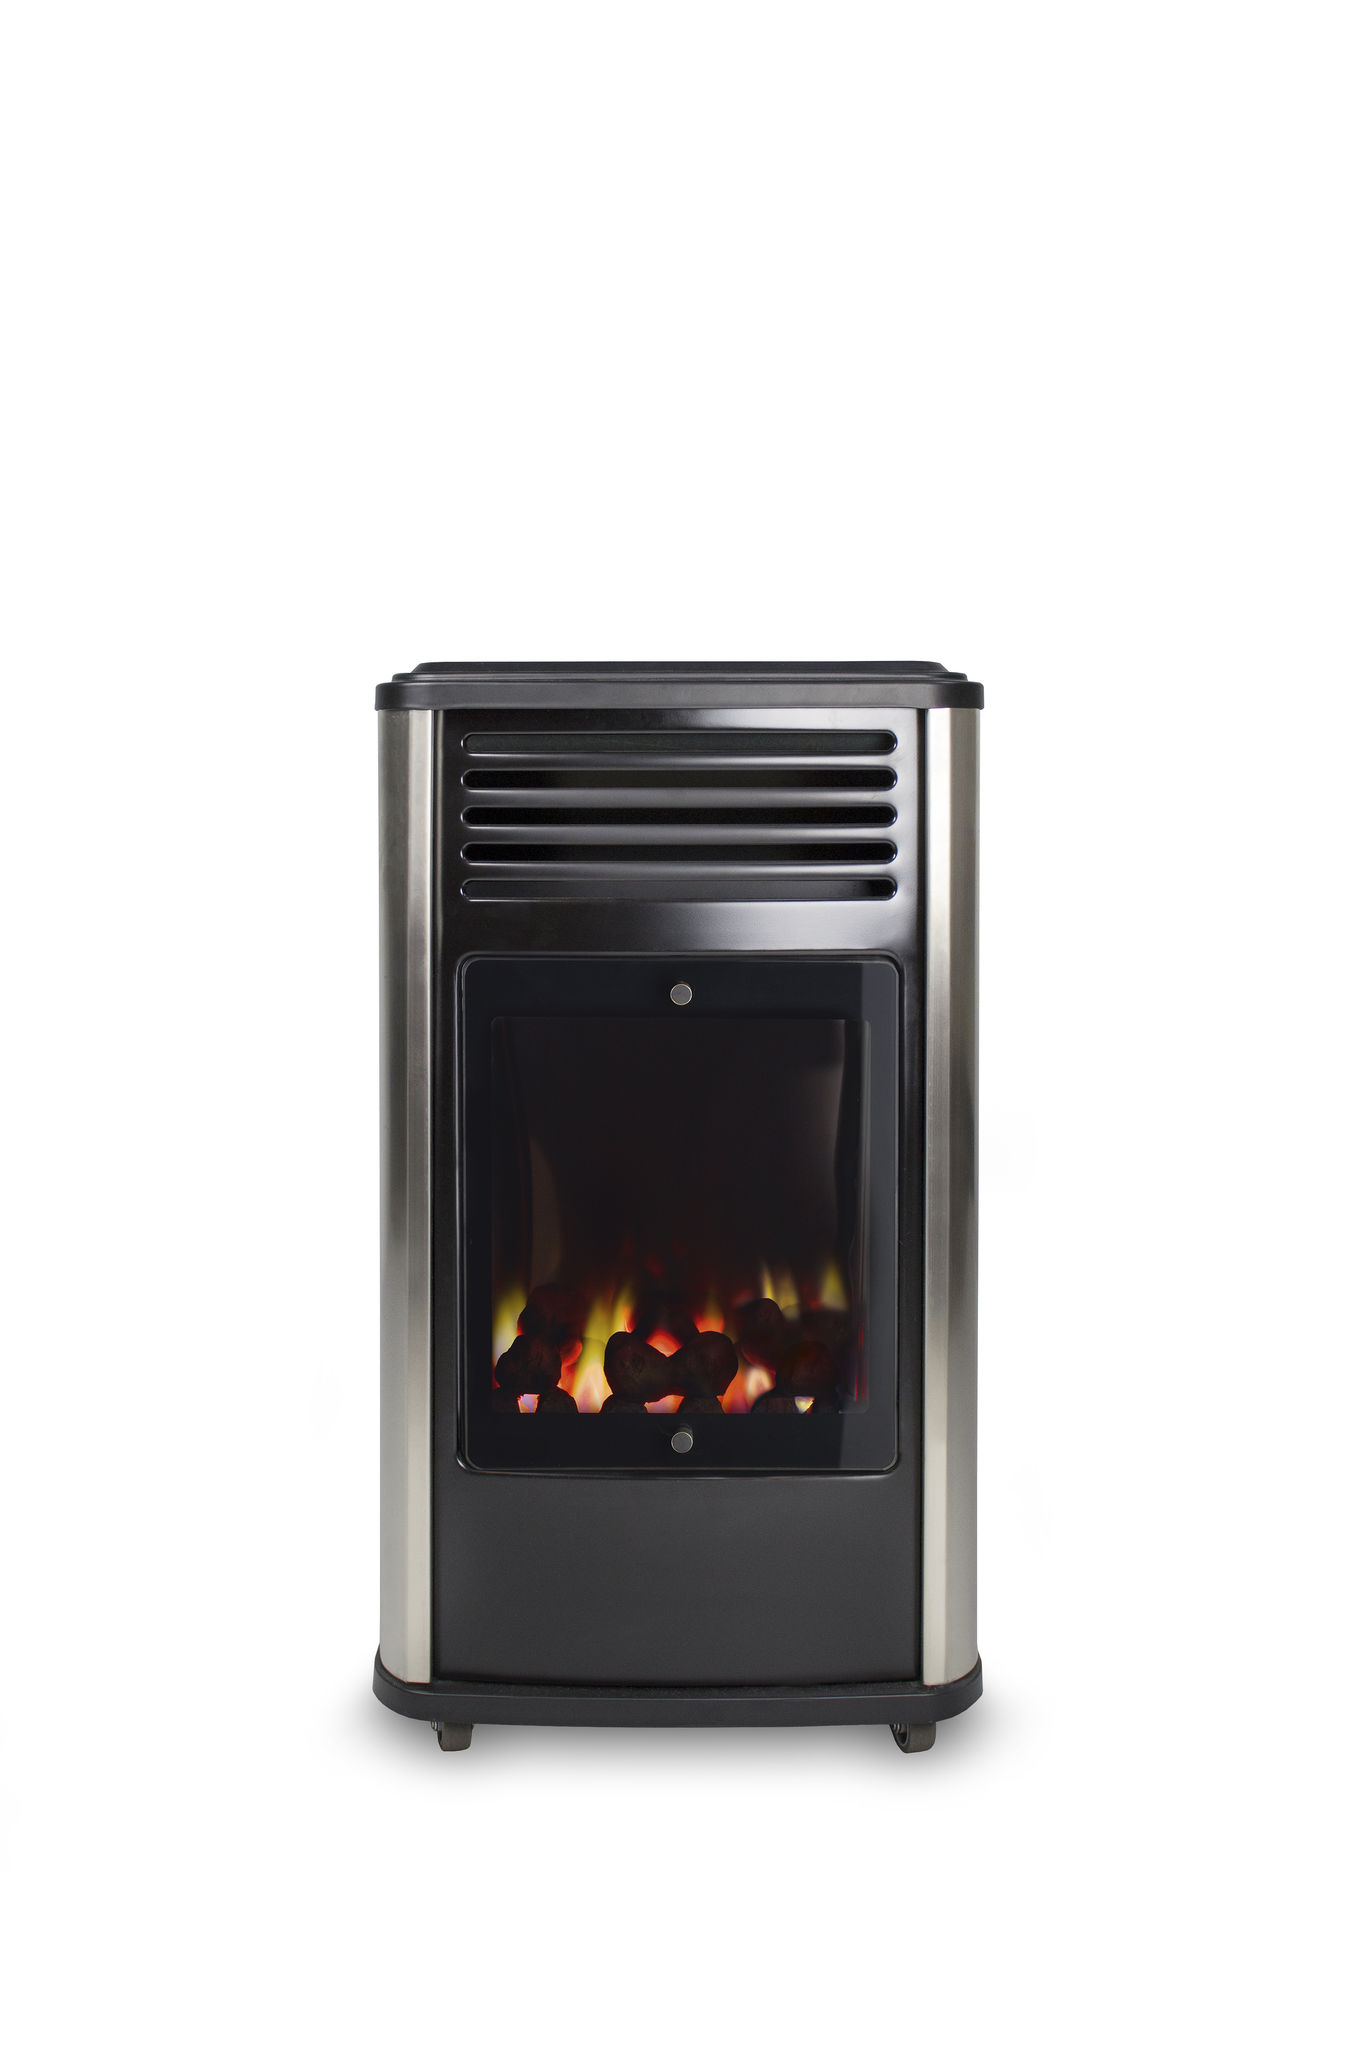 Portable Manhattan Living Flame Heater image 1